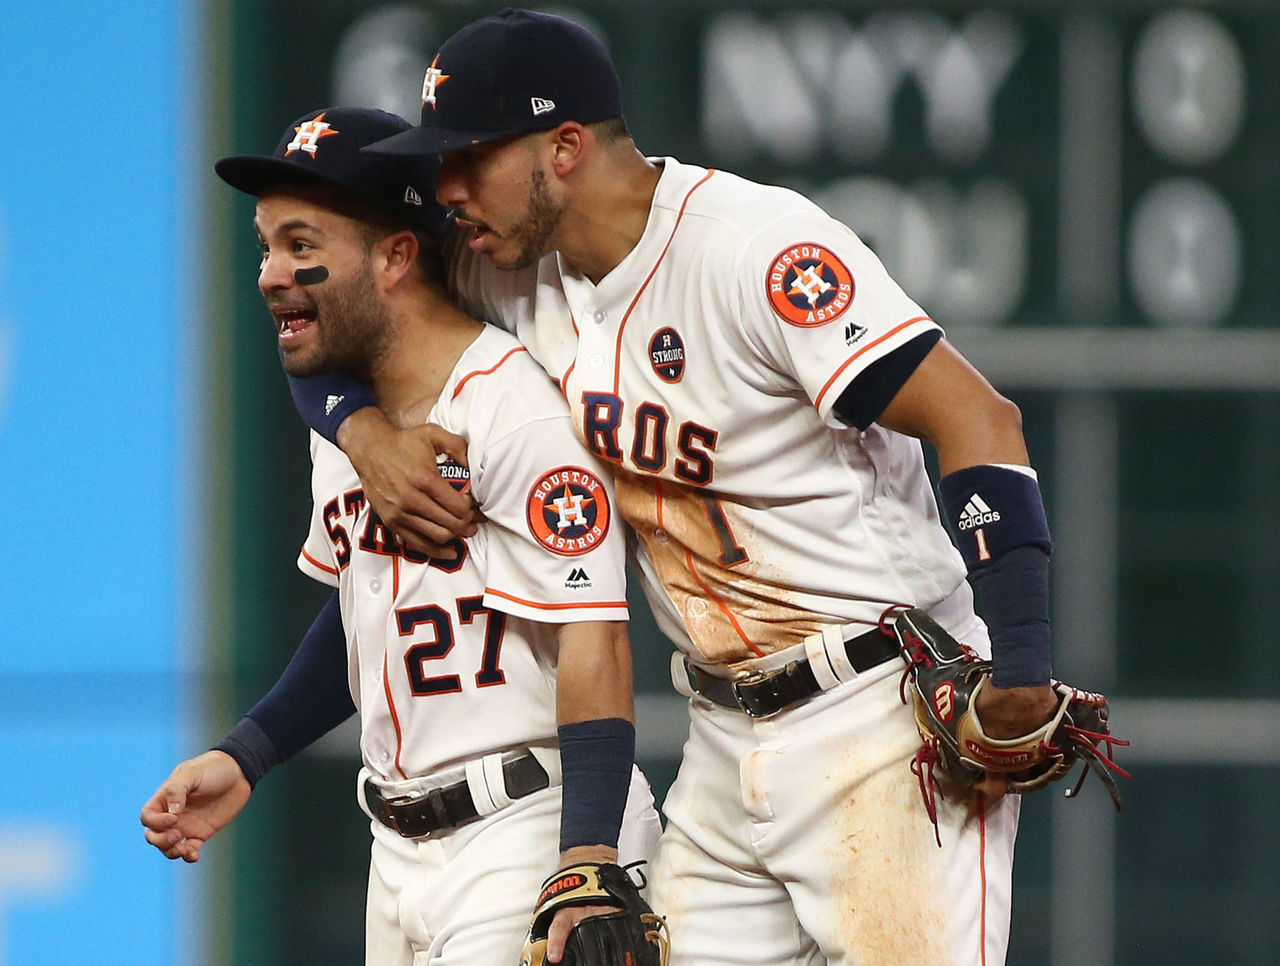 Cropped 2017 10 21t035202z 1568053500 nocid rtrmadp 3 mlb alcs new york yankees at houston astros